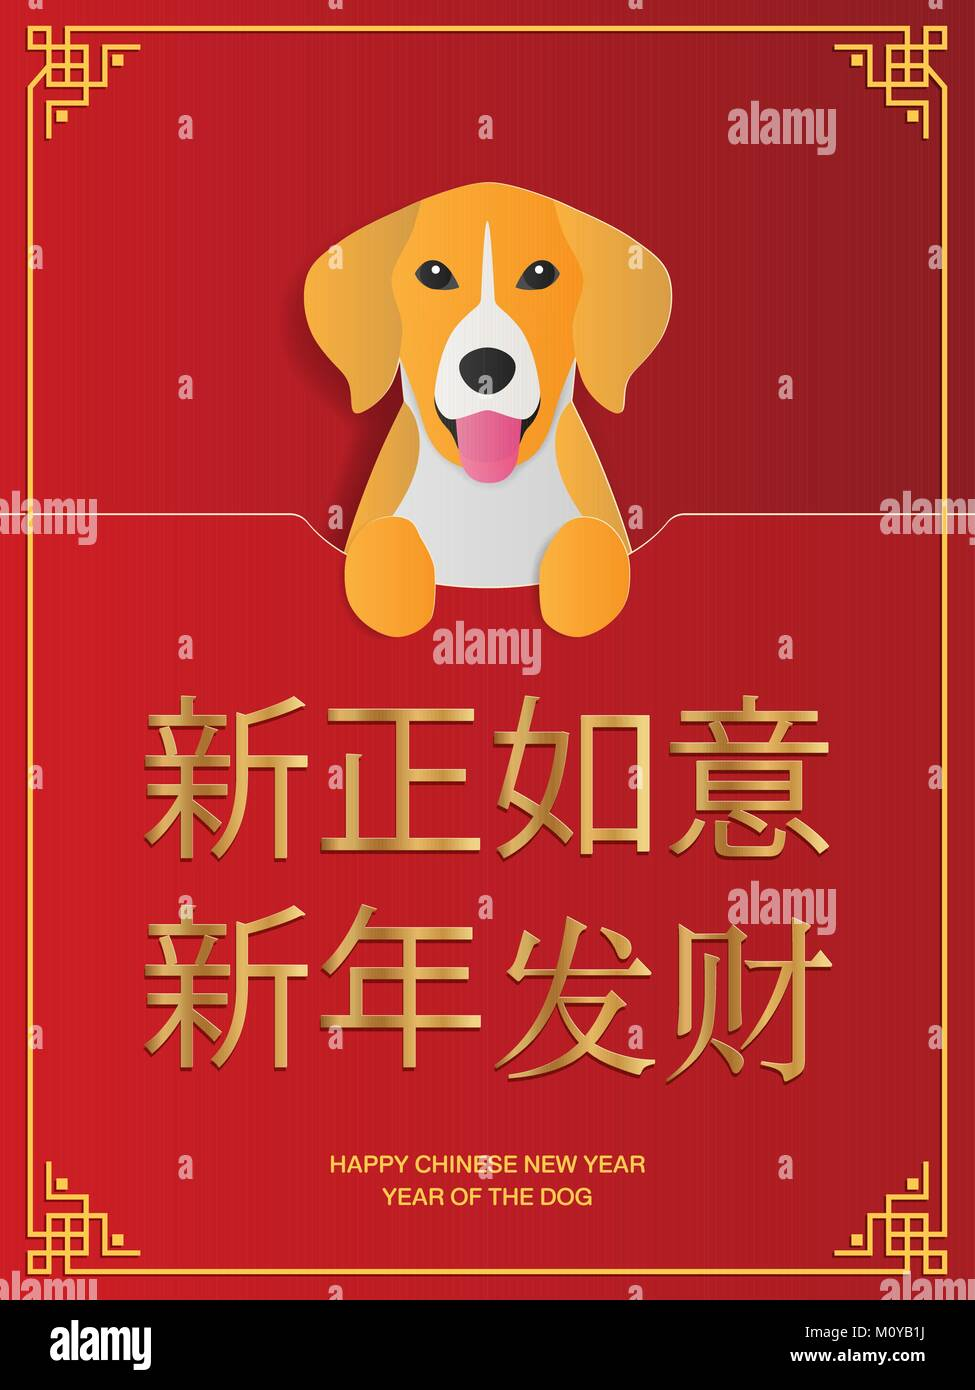 Chinese new year greeting card with dog decorations and chinese new year greeting card with dog decorations and traditional asian patterns paper art styles vector illustration translation of chinese ca kristyandbryce Images